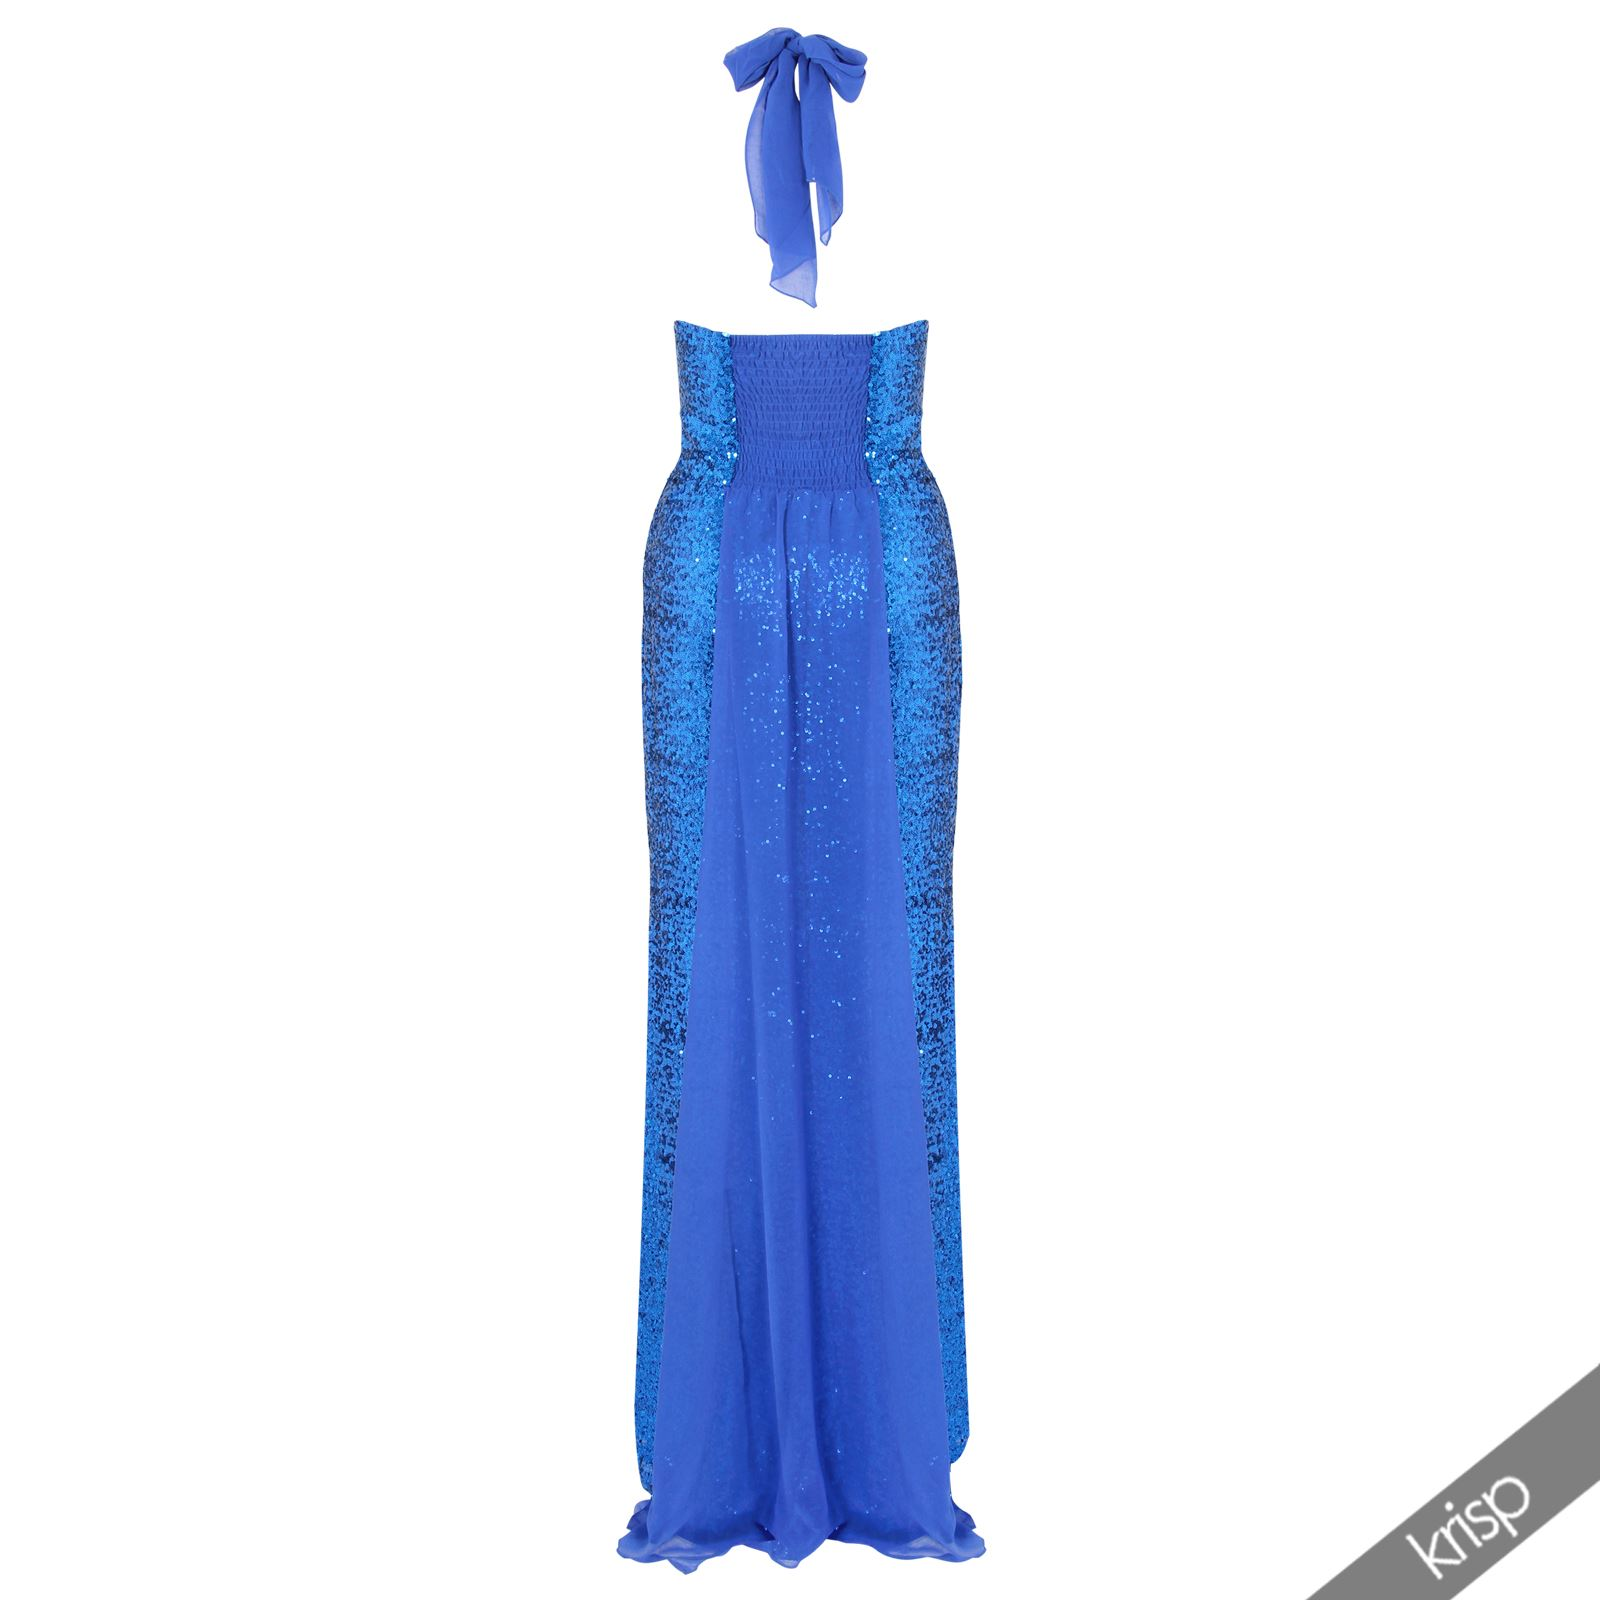 Womens sequin chiffon halter neck top long maxi dress prom for Maxi dresses for wedding party